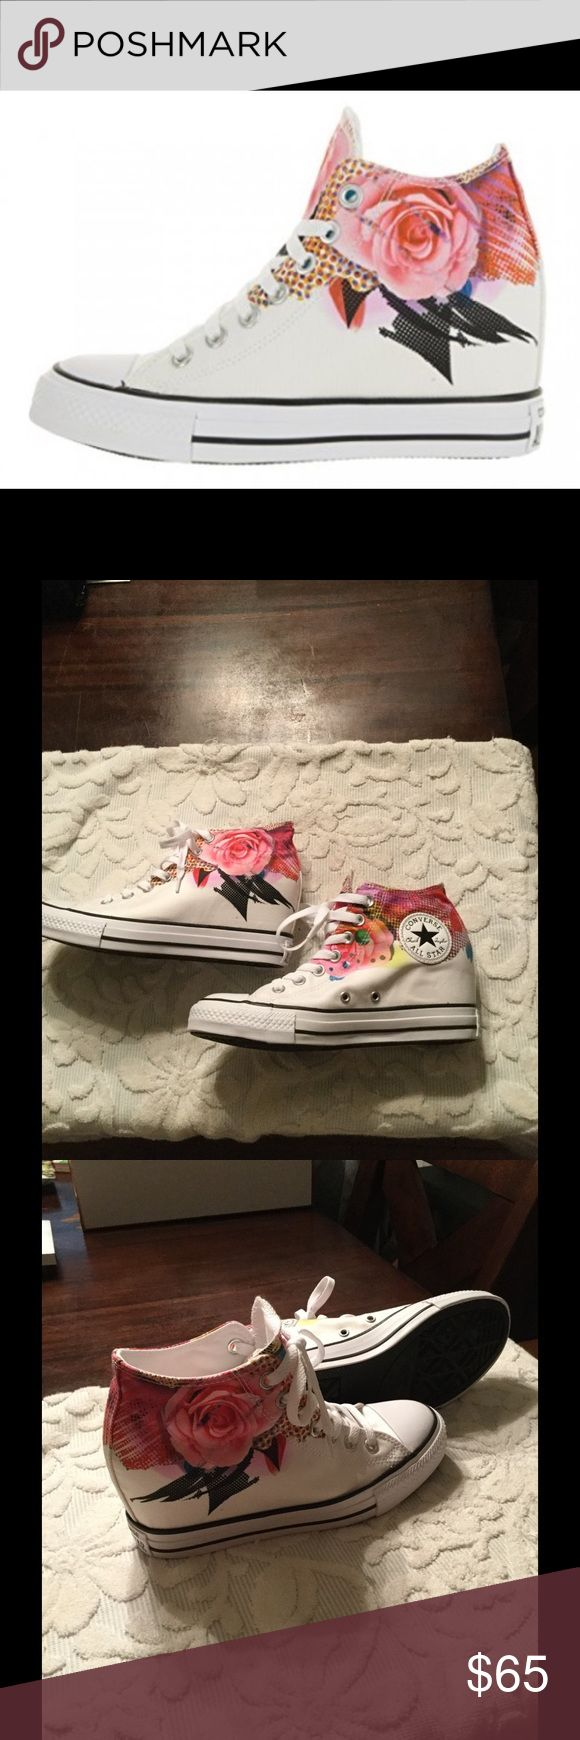 Converse Women's Chuck Taylor Lux Mid Converse Size 8 Brand new never worn. High cut with interior wedge for added height Converse Shoes Sneakers